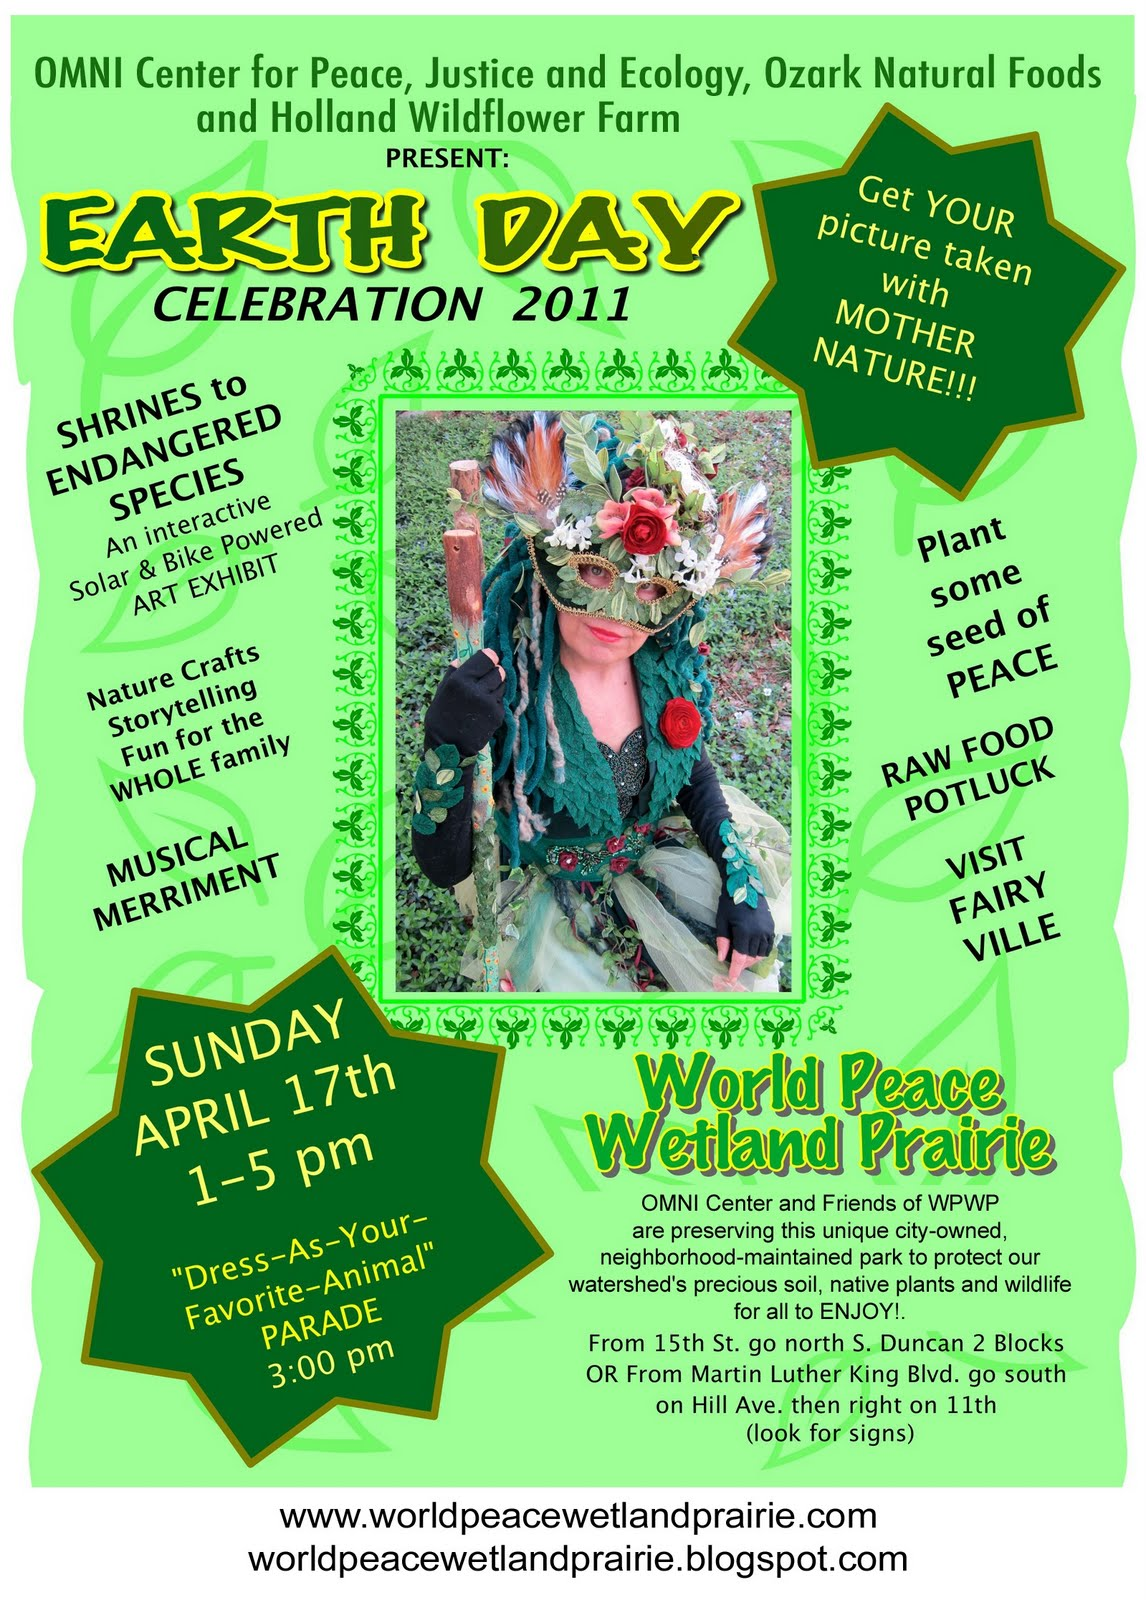 Invitation To Attend Earth Day 2011 At World Peace Wetland Prairie And Share Your Information On Environmental Natural Resource Conservation